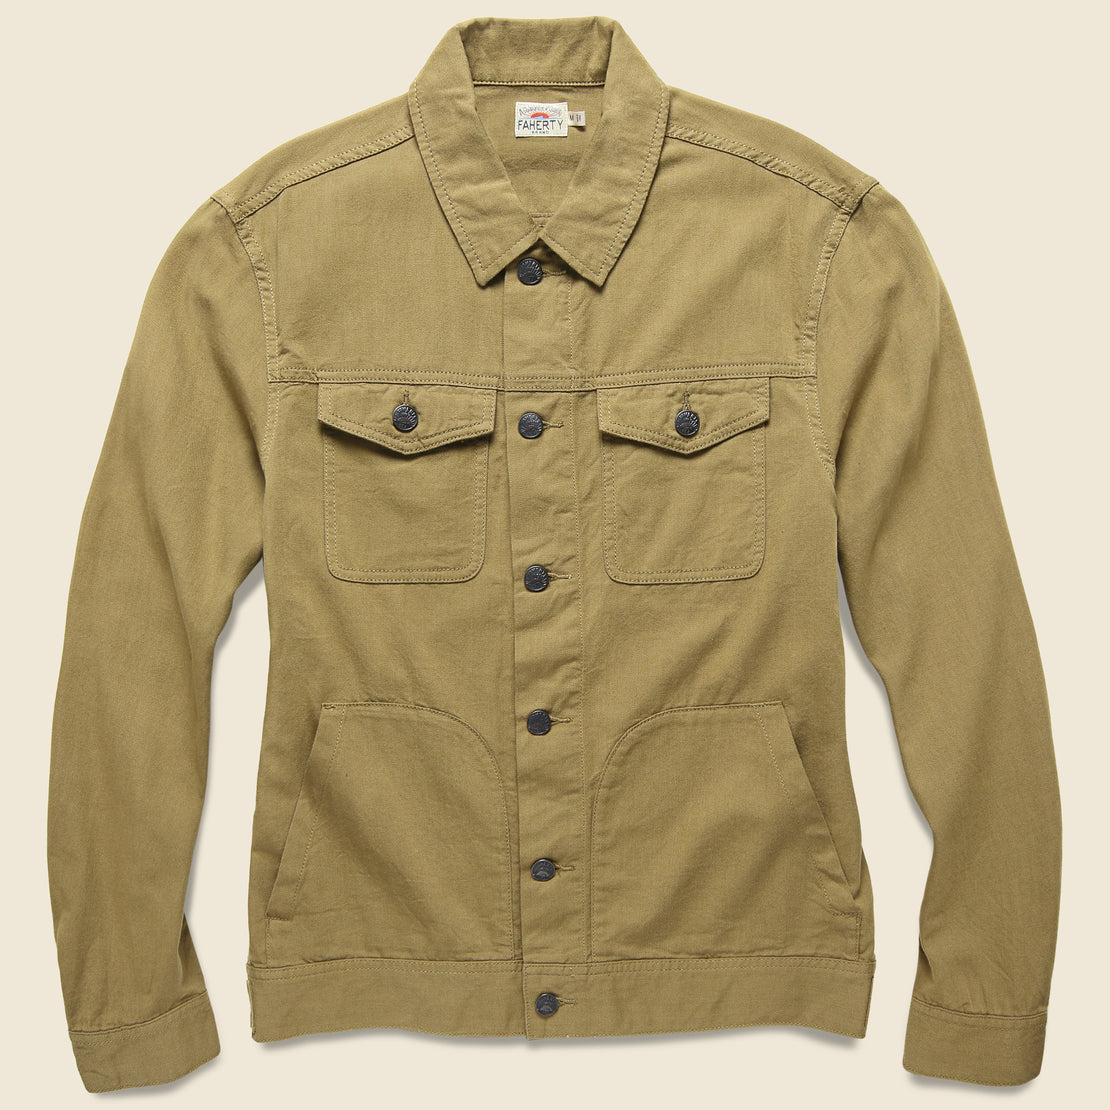 Faherty Route 80 Jacket - Weir Brown